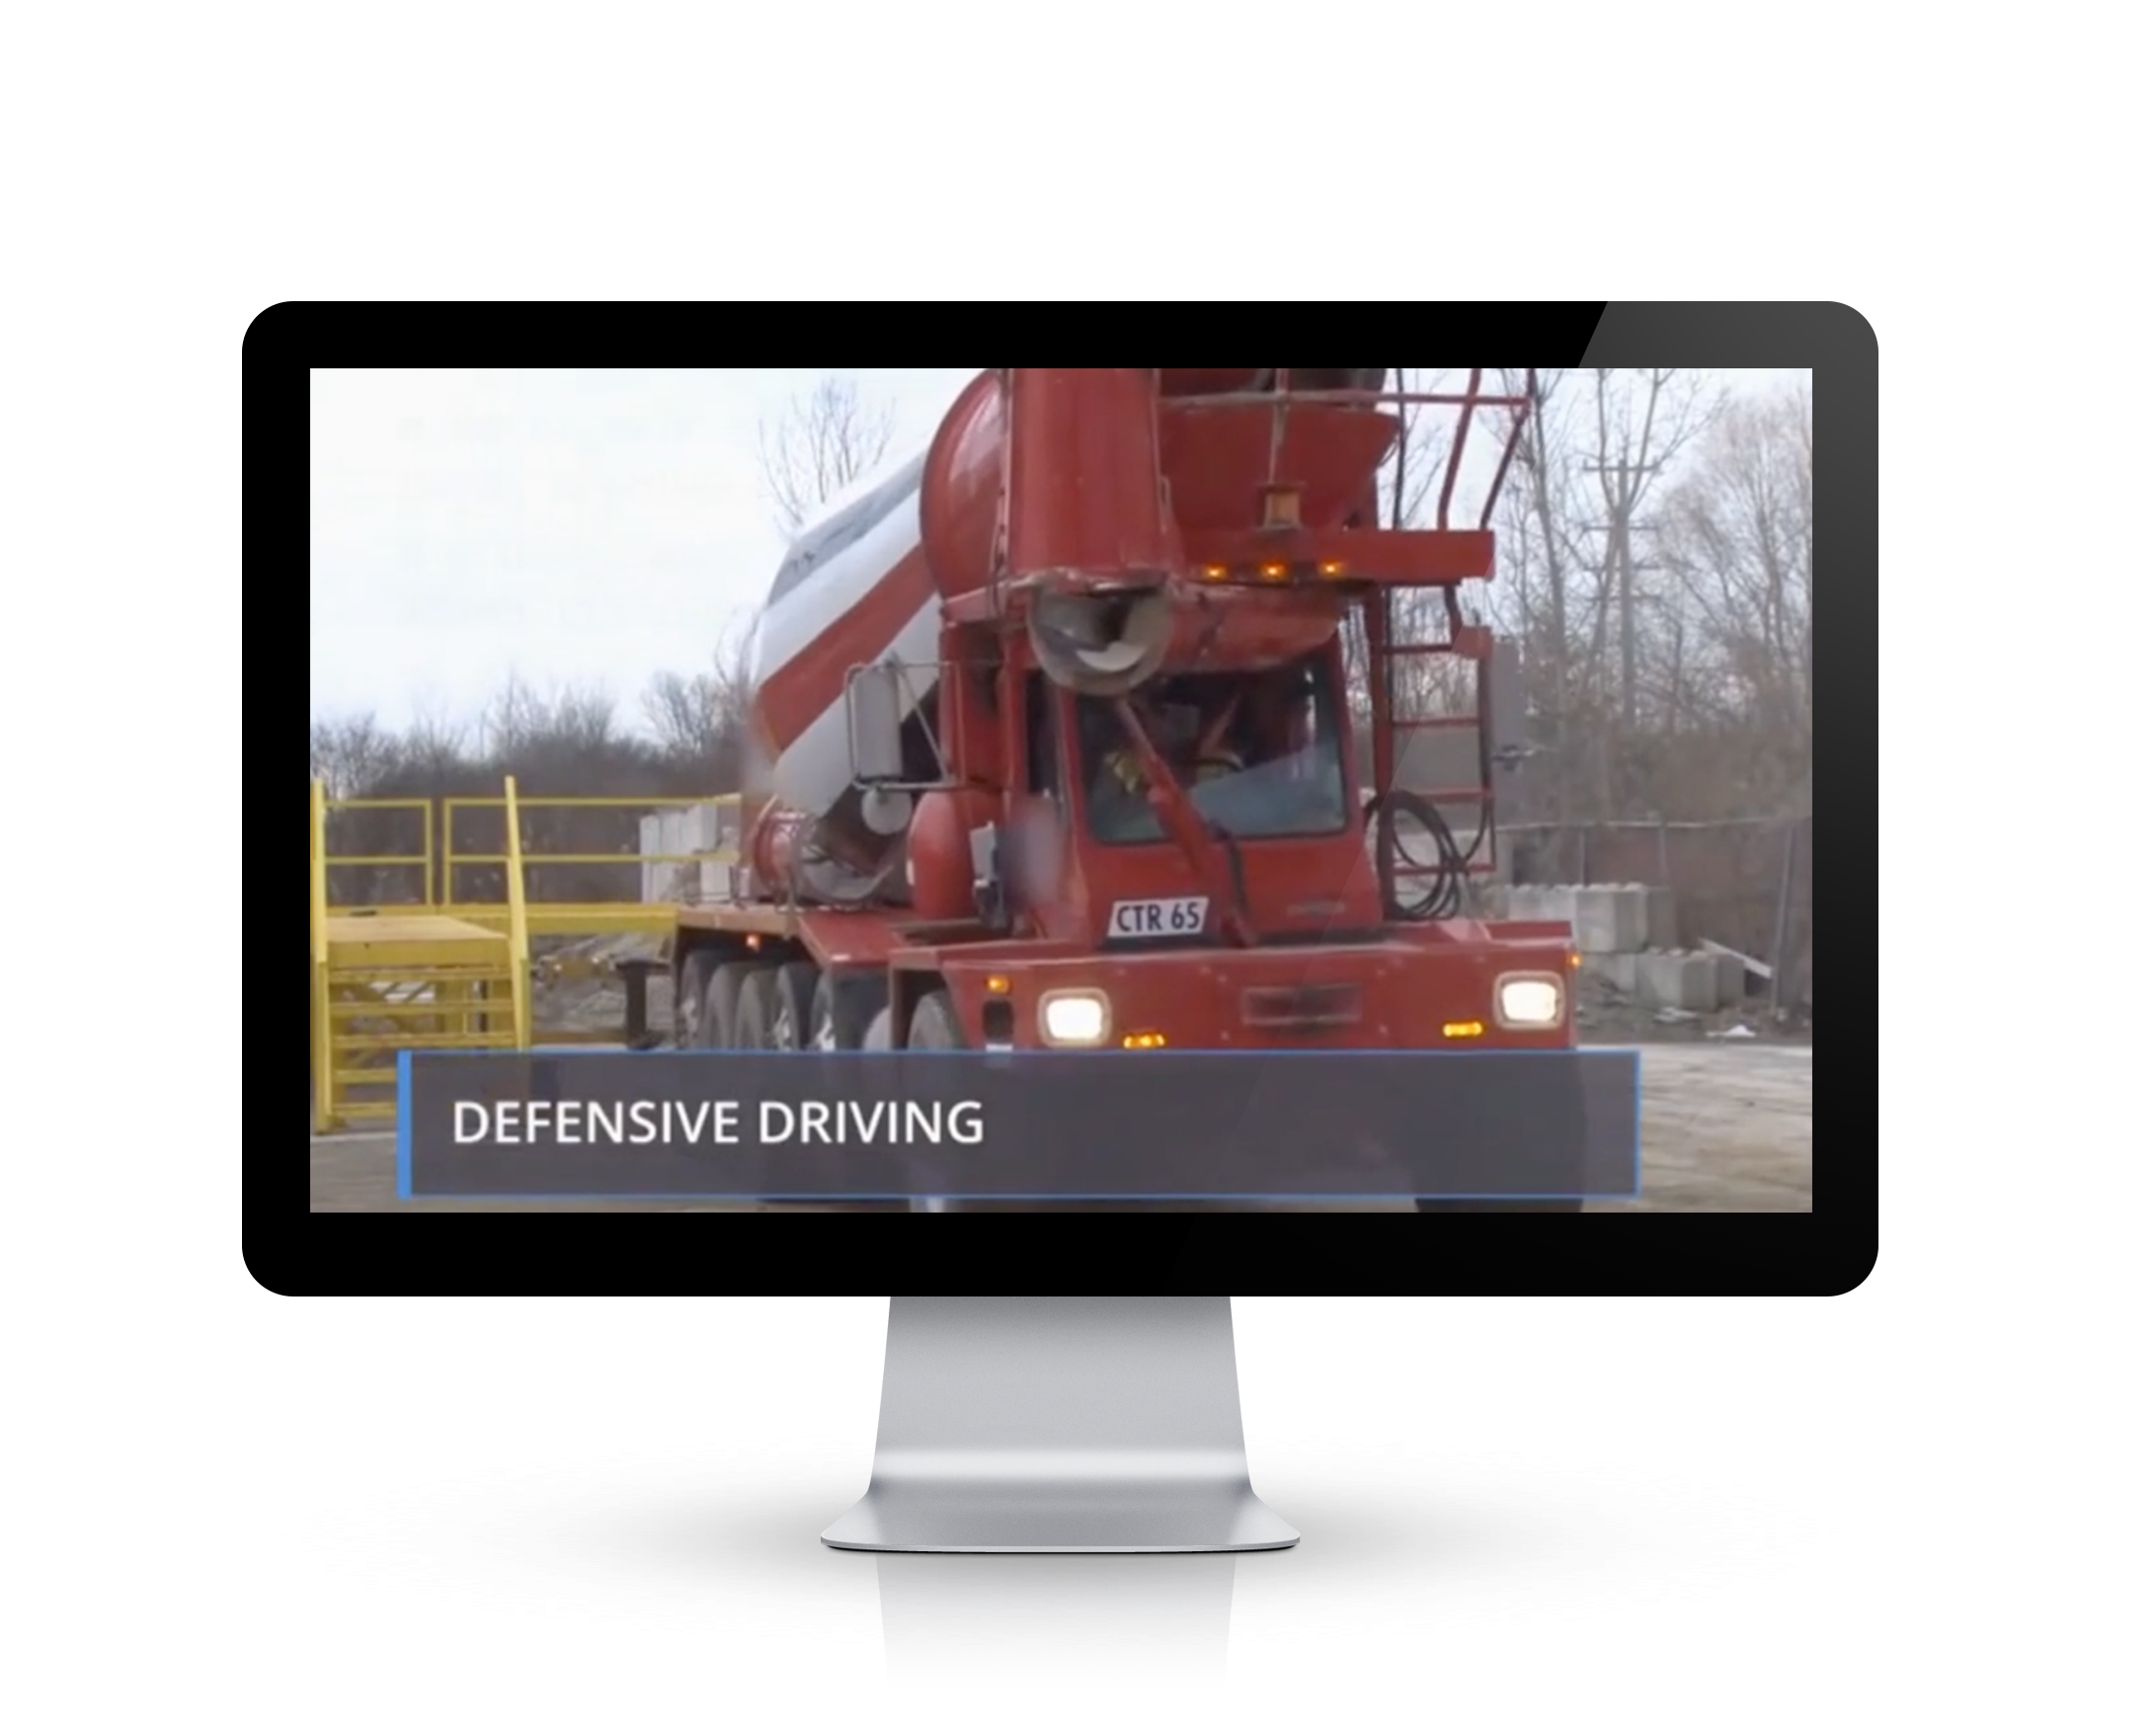 defensive driving ehs training still on a Video Base